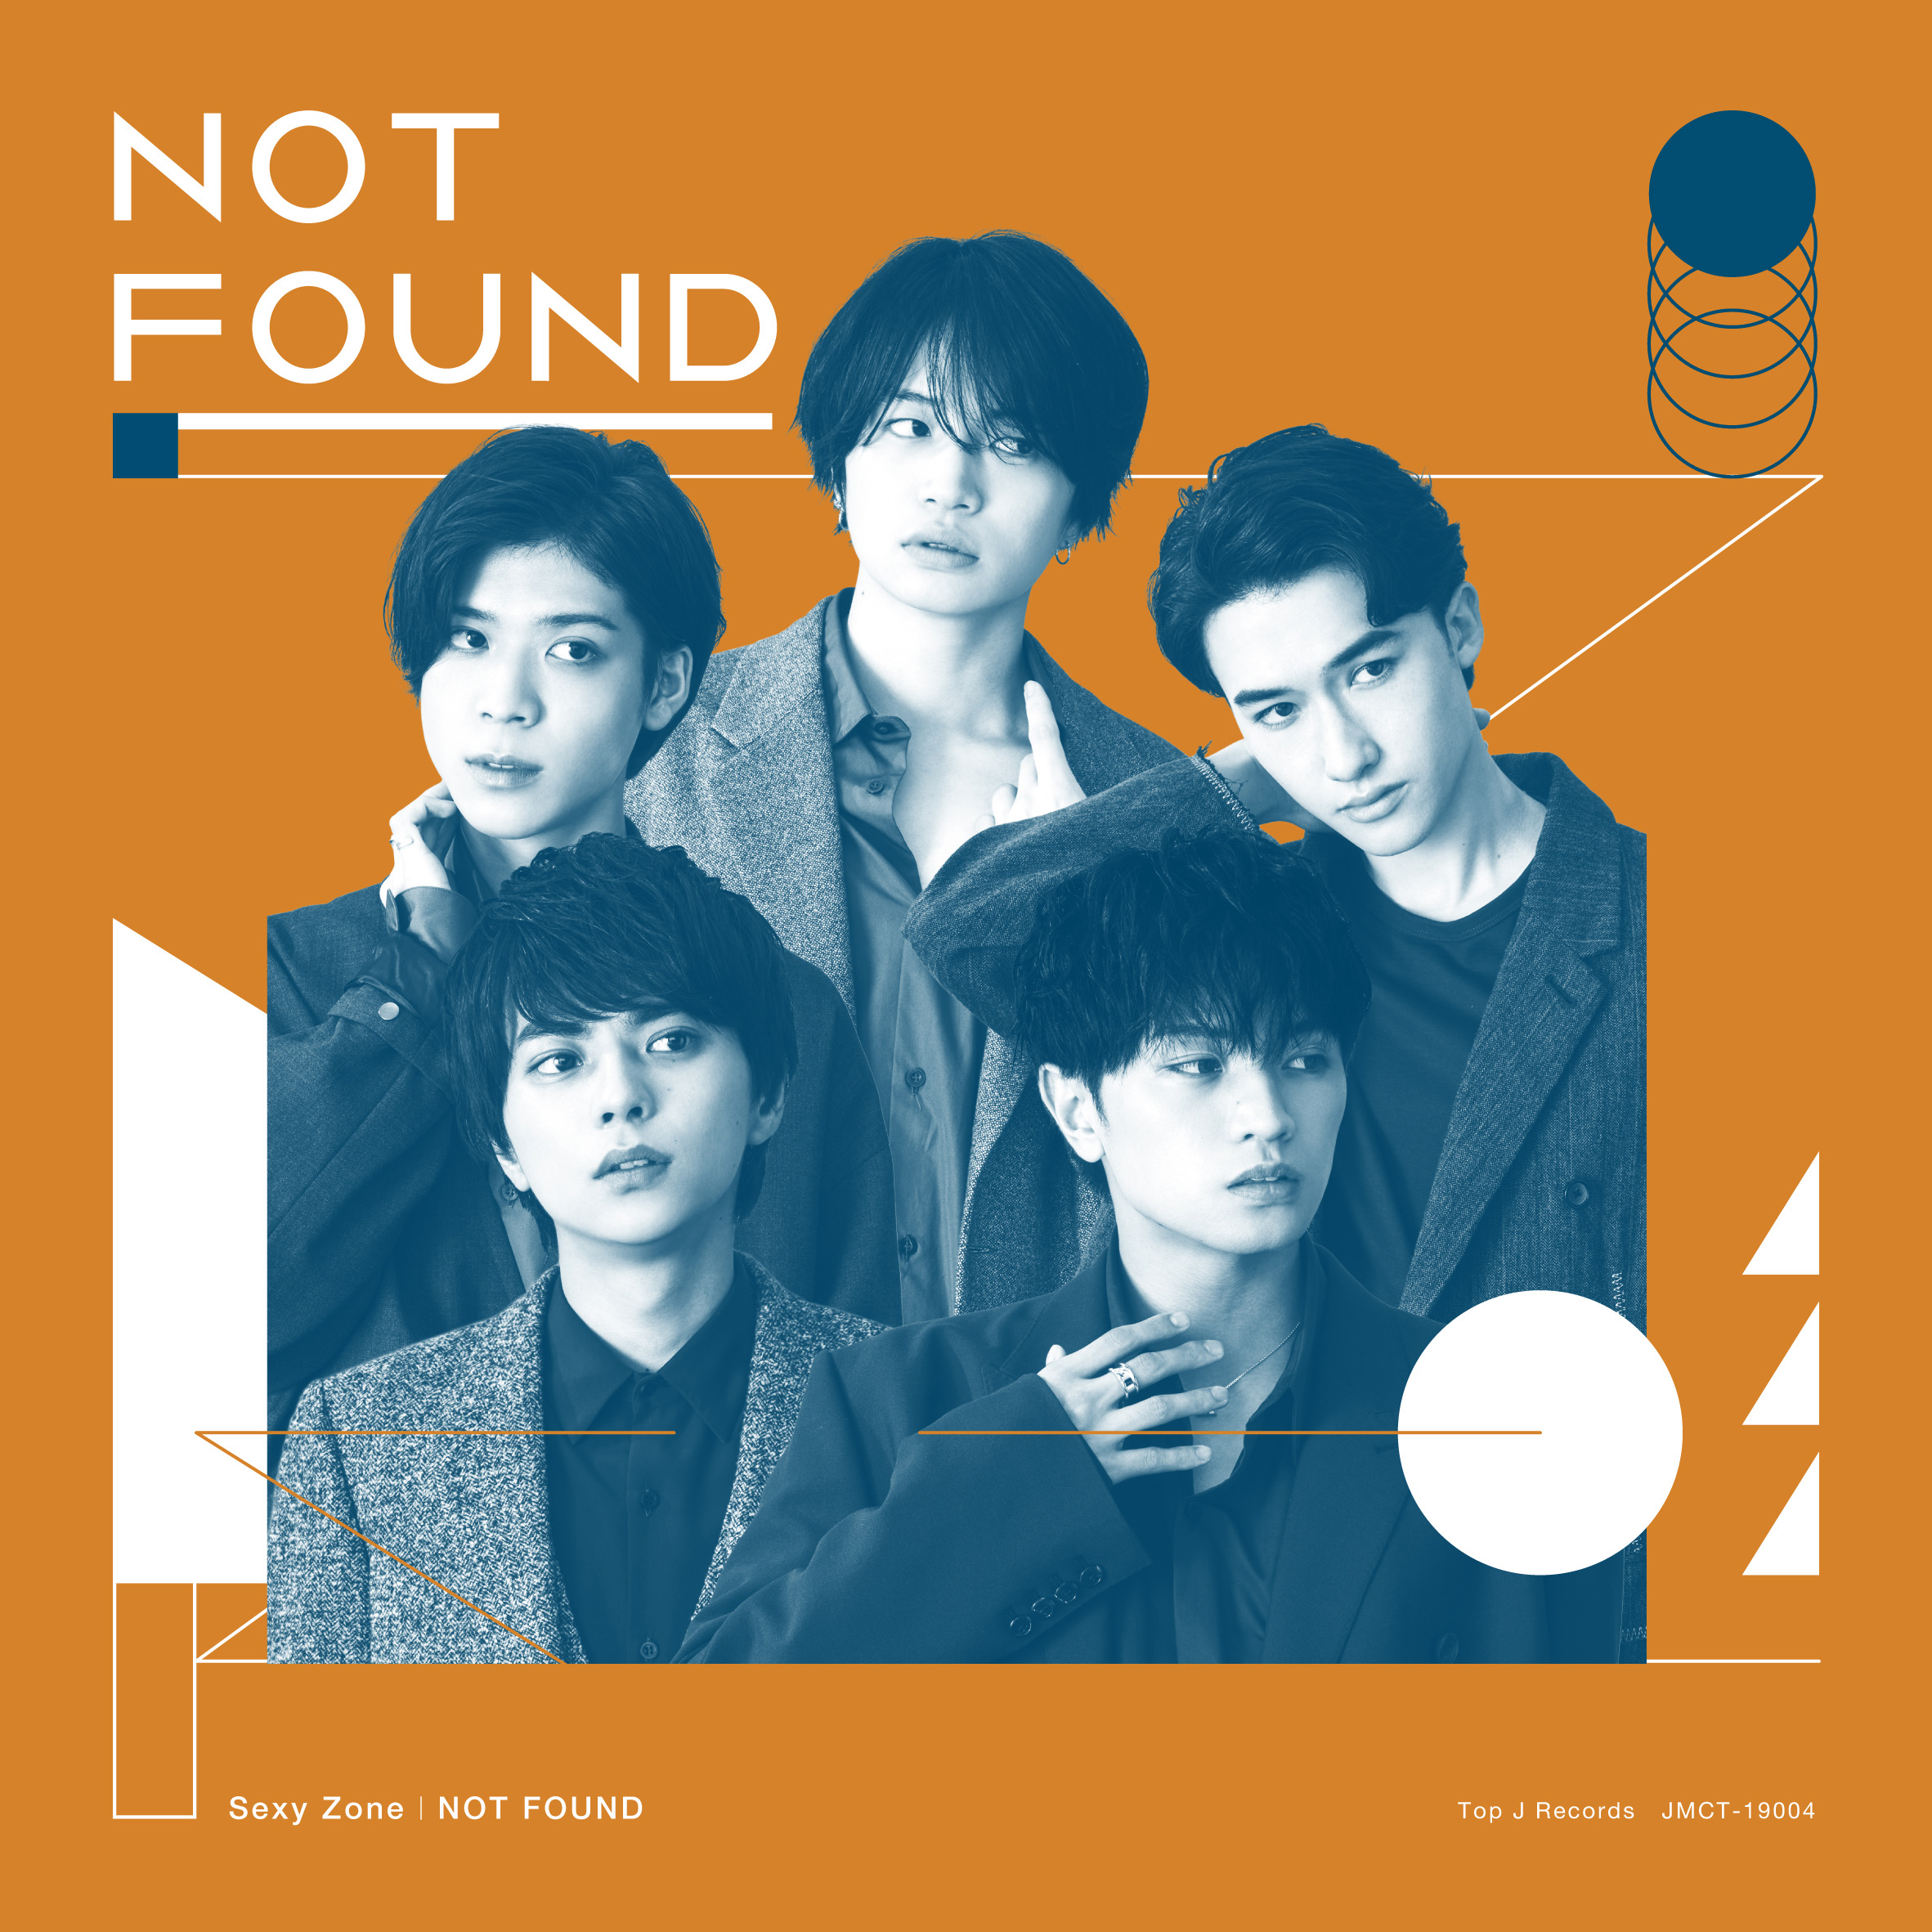 Sexy Zone-NOT FOUND 初回盤B (CD+DVD)